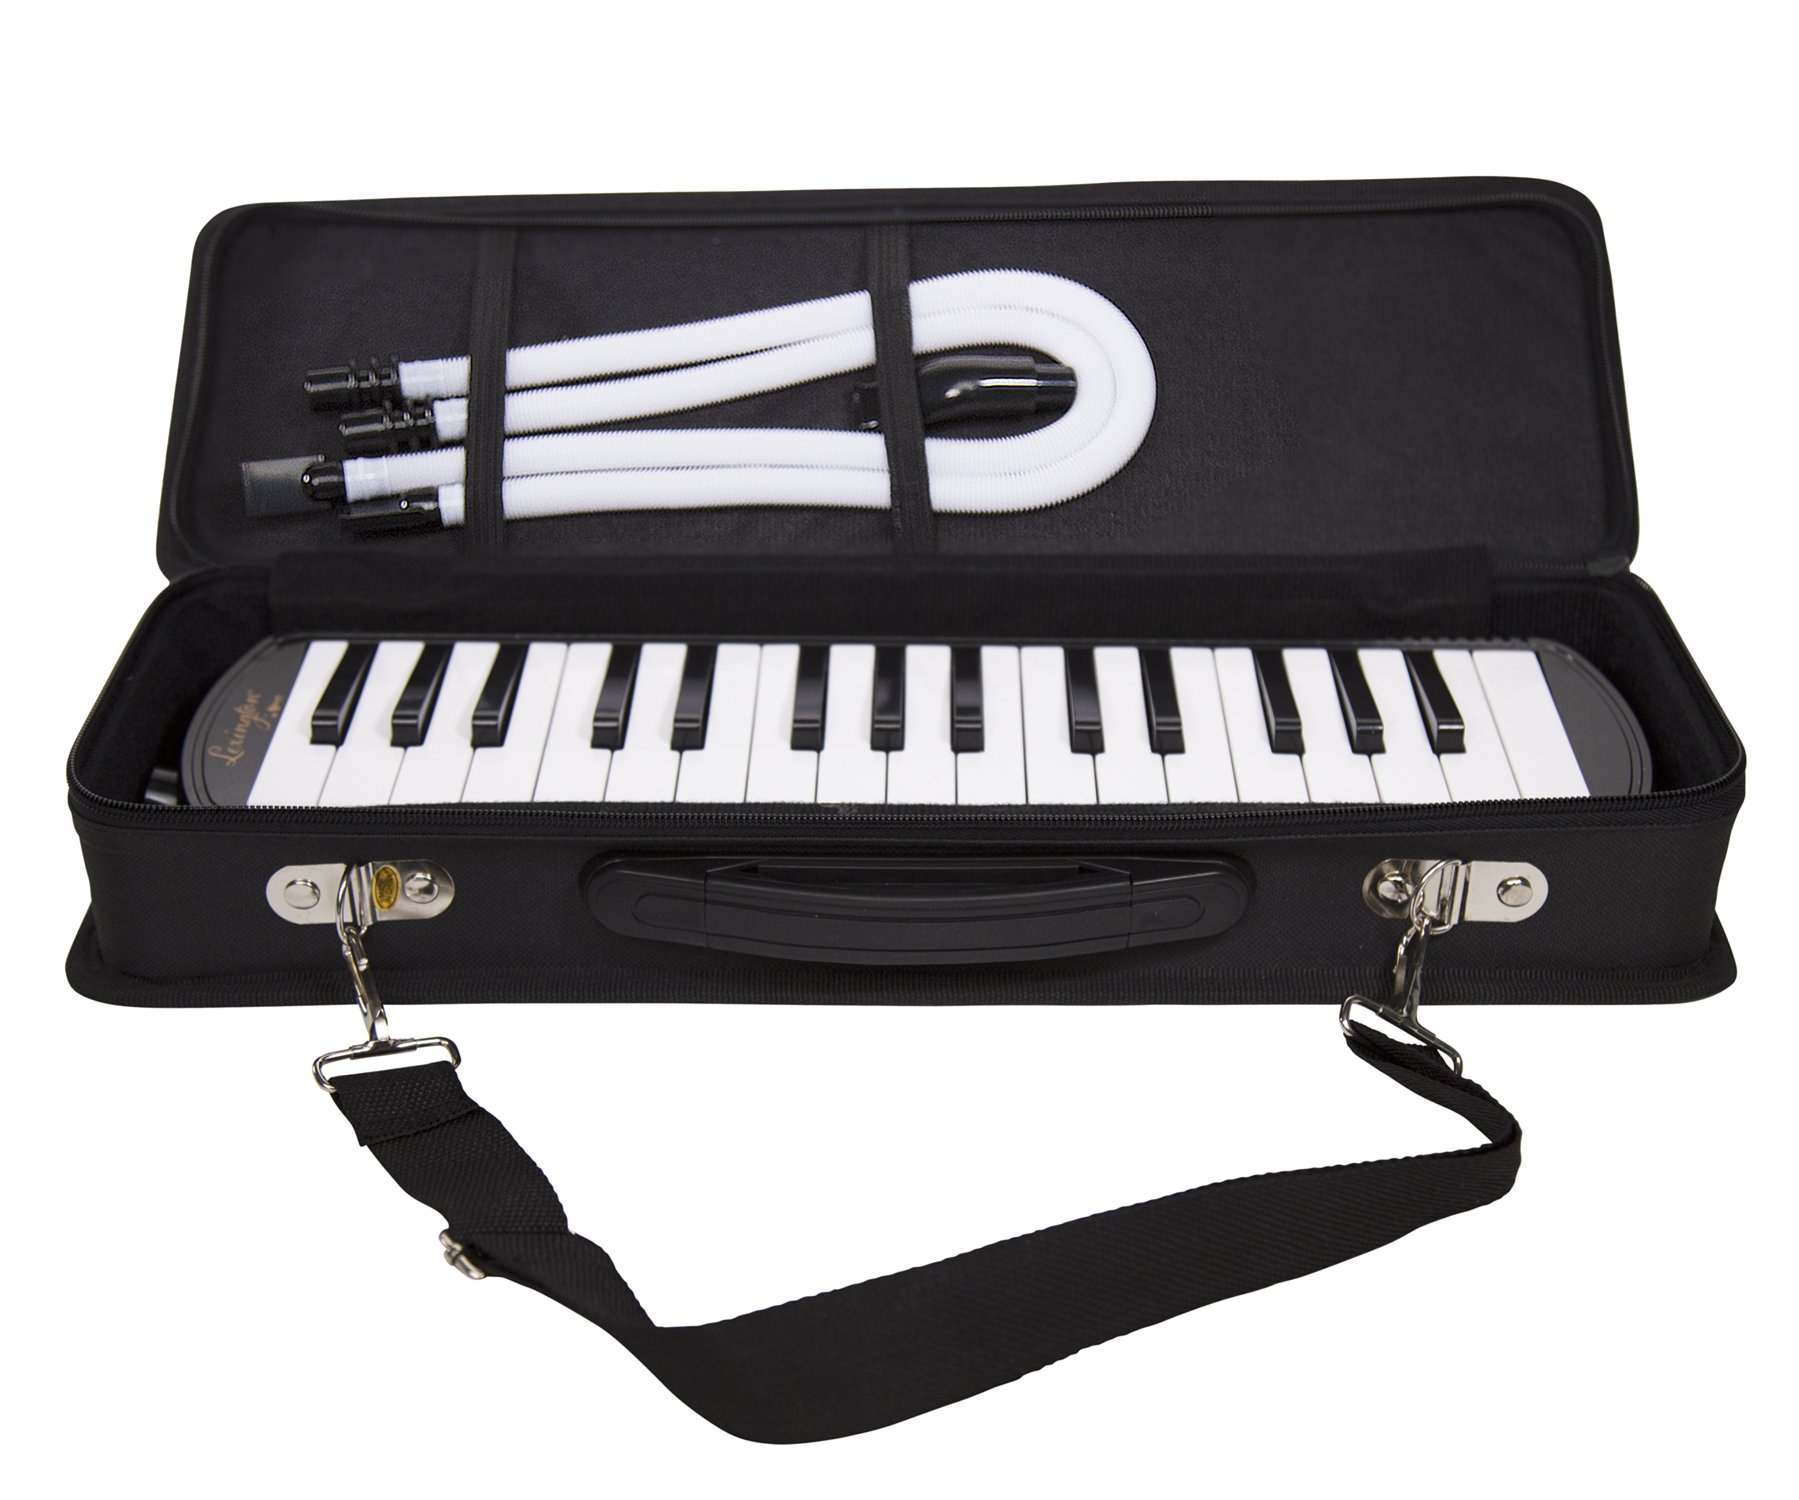 32 Piano Keys Melodica Made of Bronze Base and Reed, Package Includes 1 Carrying Case,1 Short, 2 Long Mouthpieces by Aileen (Image #8)